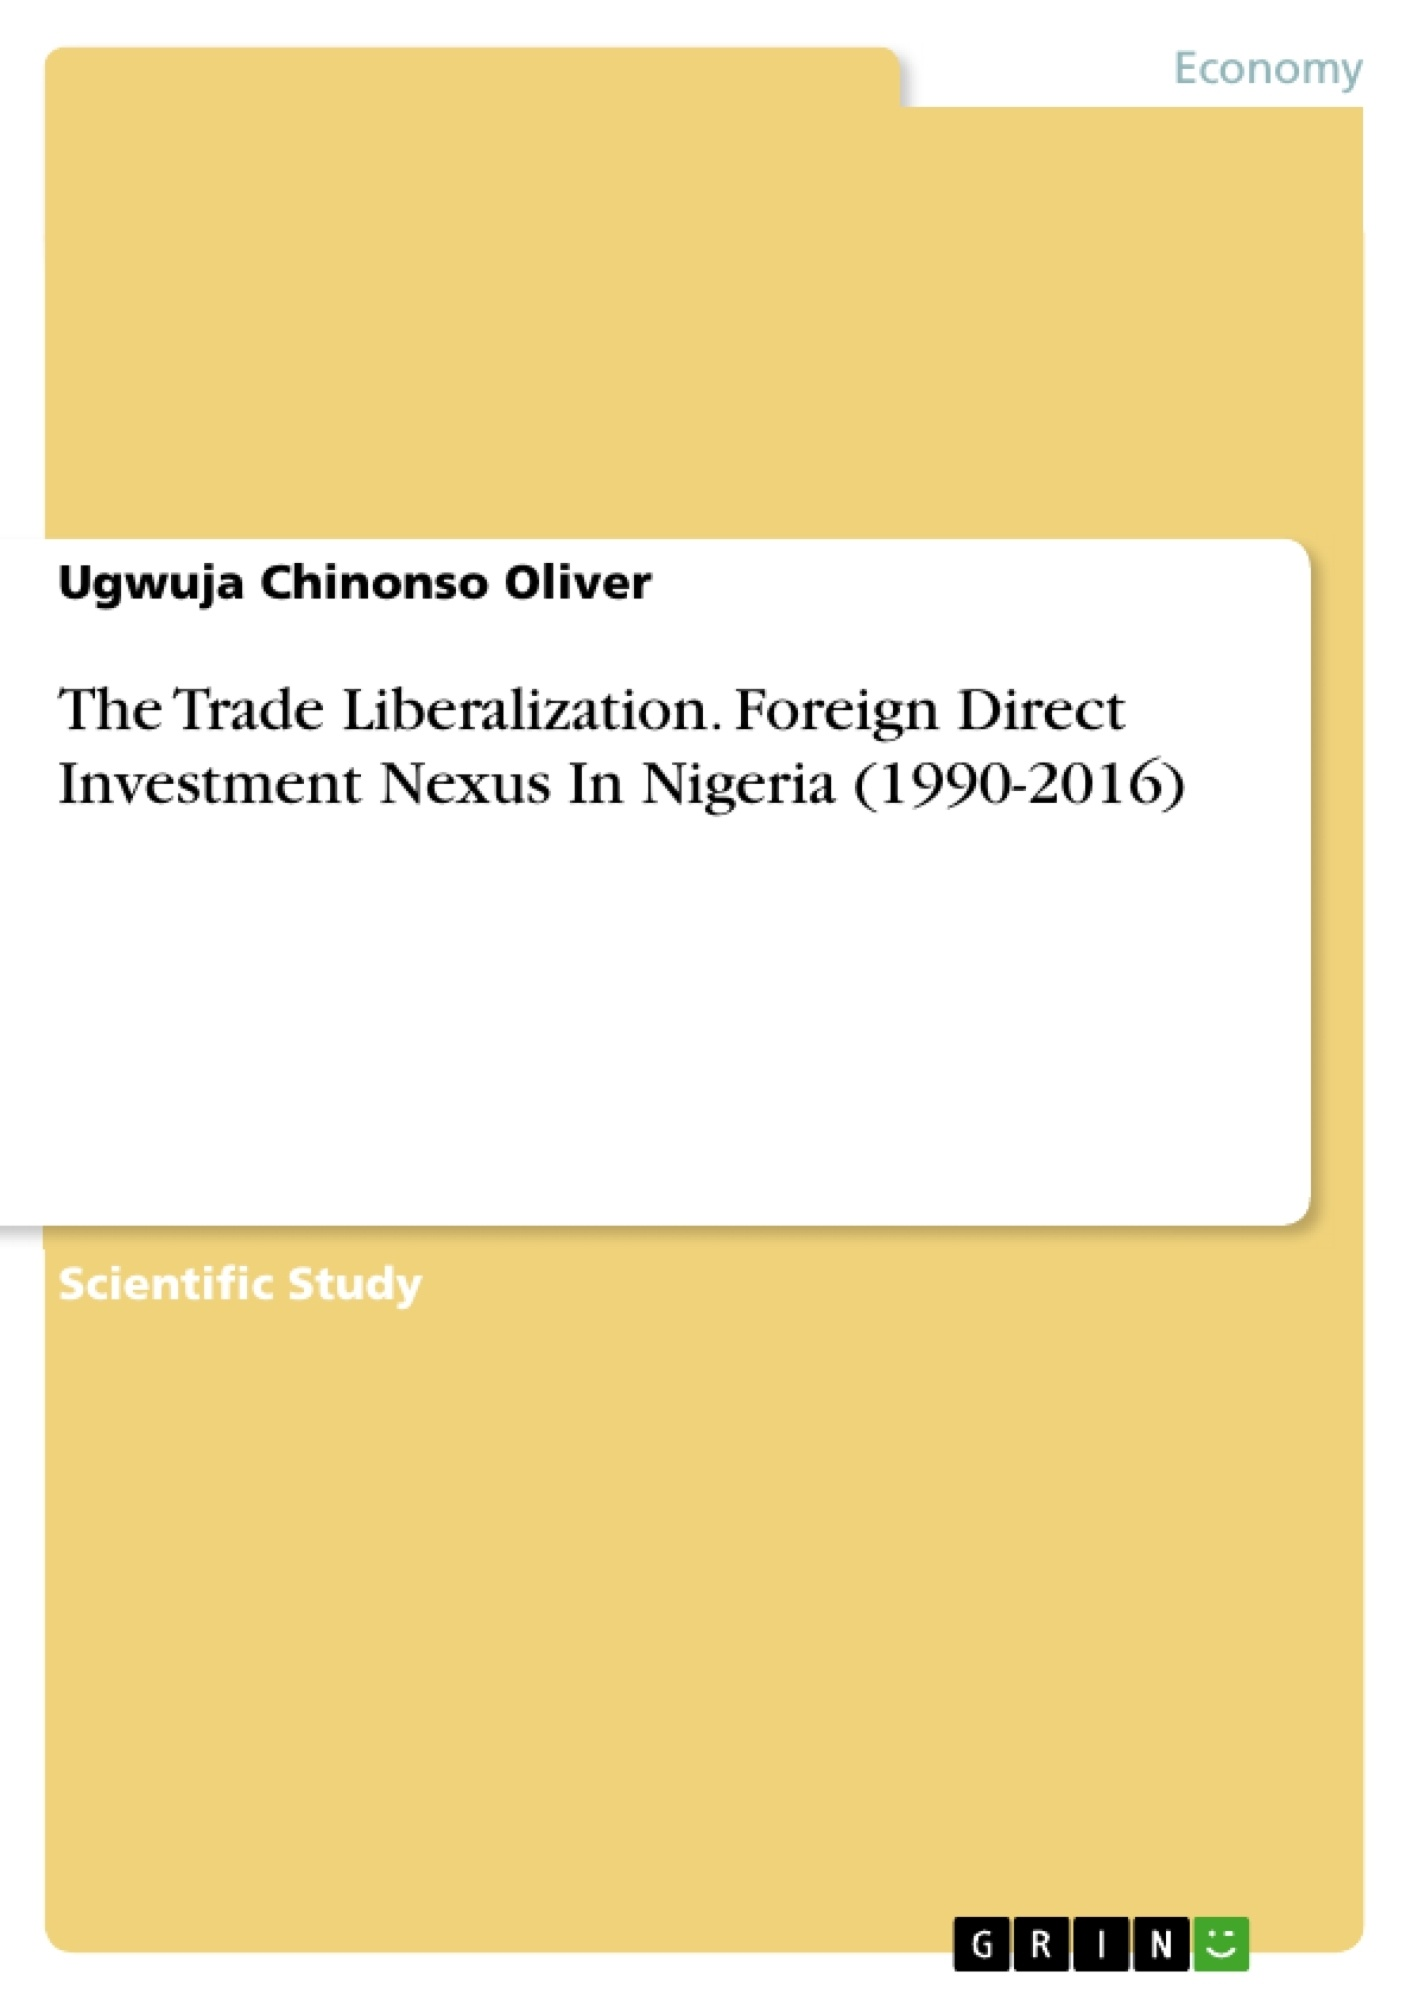 Title: The Trade Liberalization. Foreign Direct Investment Nexus In Nigeria (1990-2016)